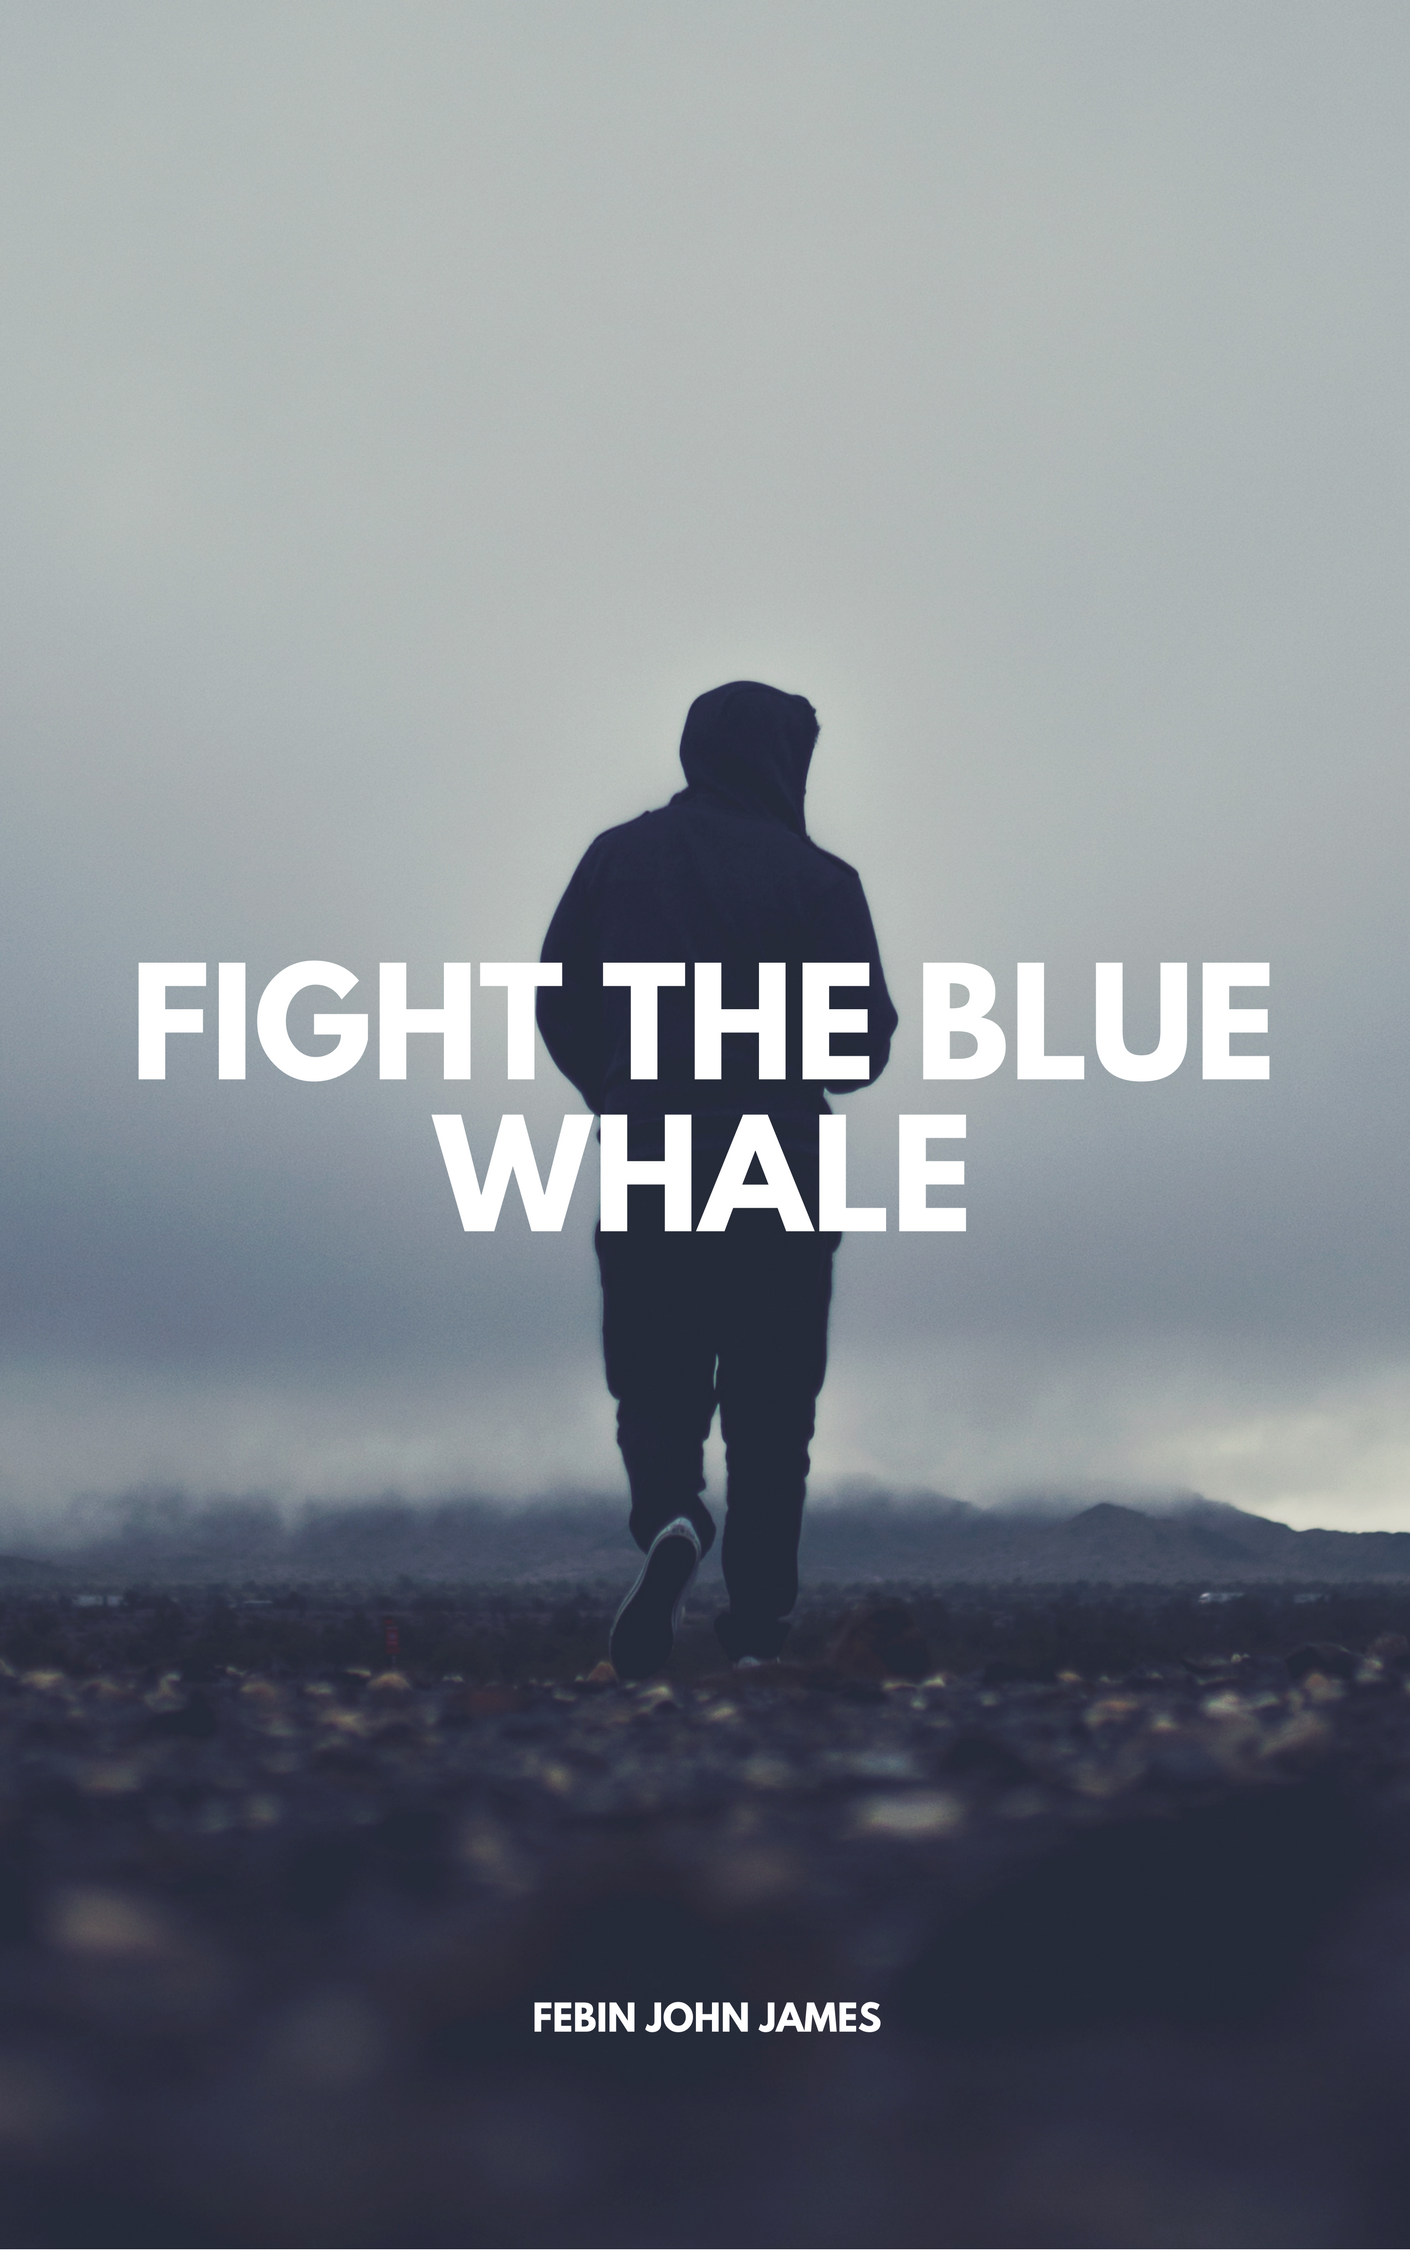 /fight-the-blue-whale-328aac92fe0 feature image